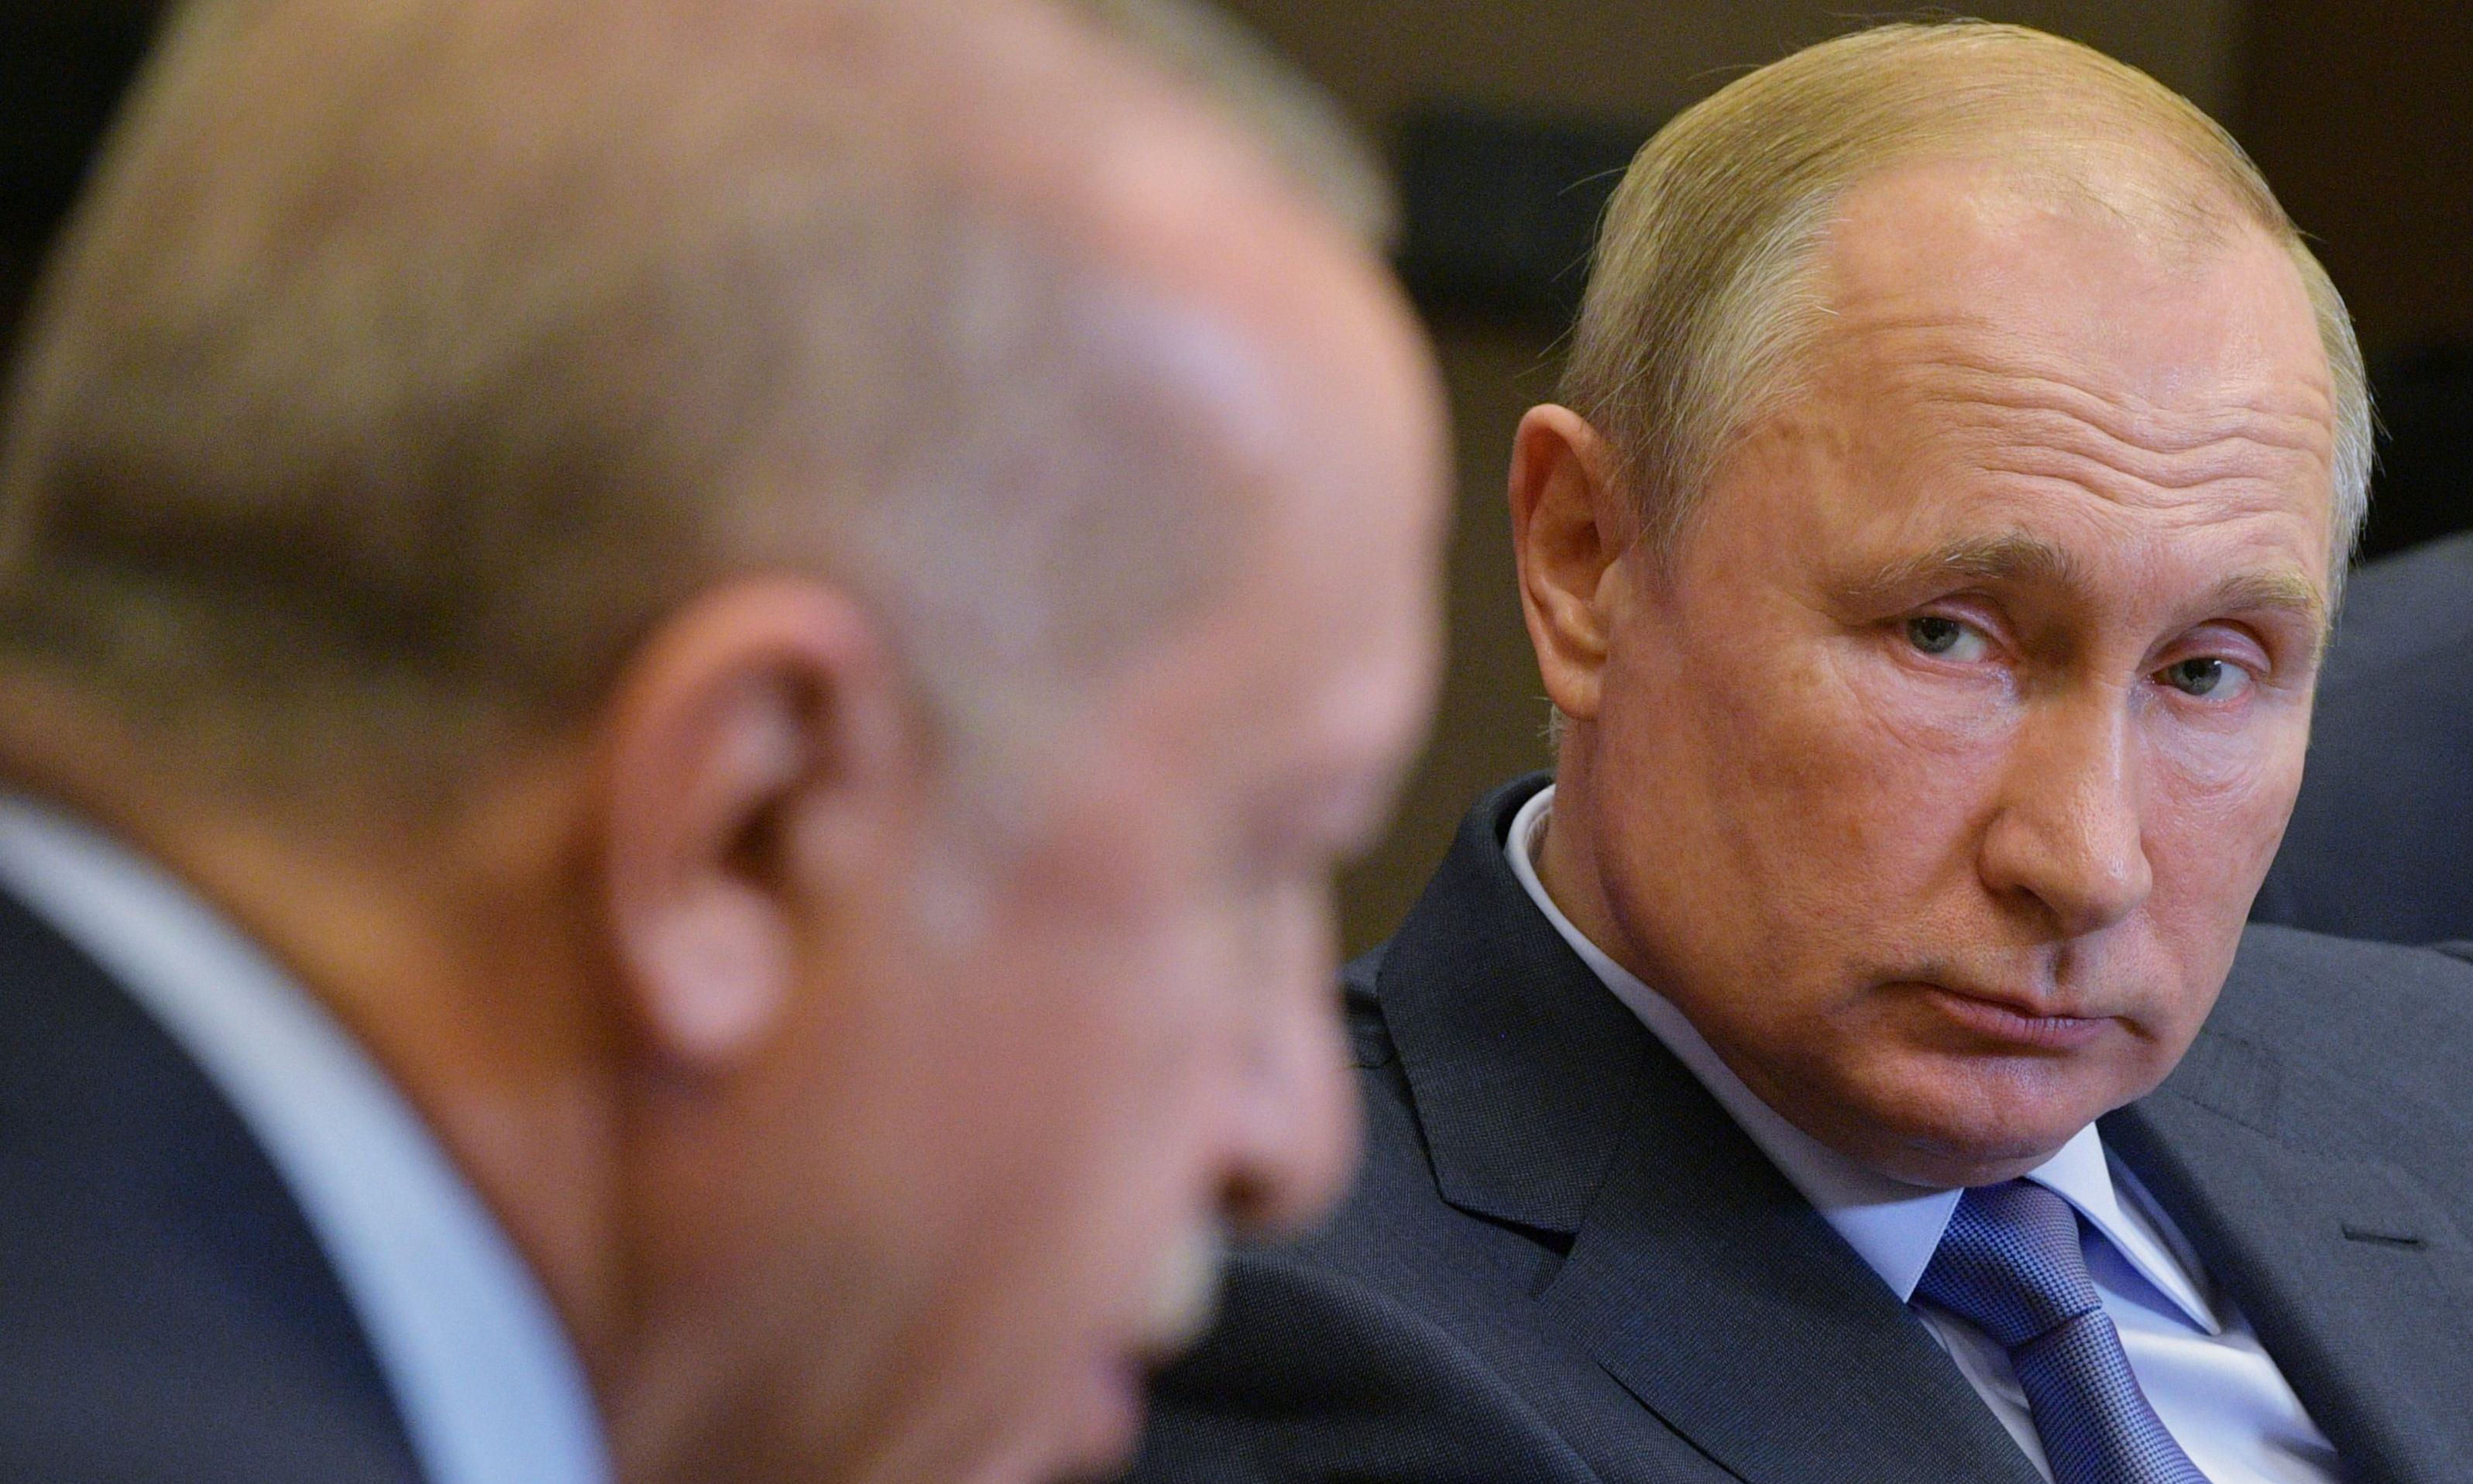 Russia has been playing a canny game in the Middle East, but can it continue?